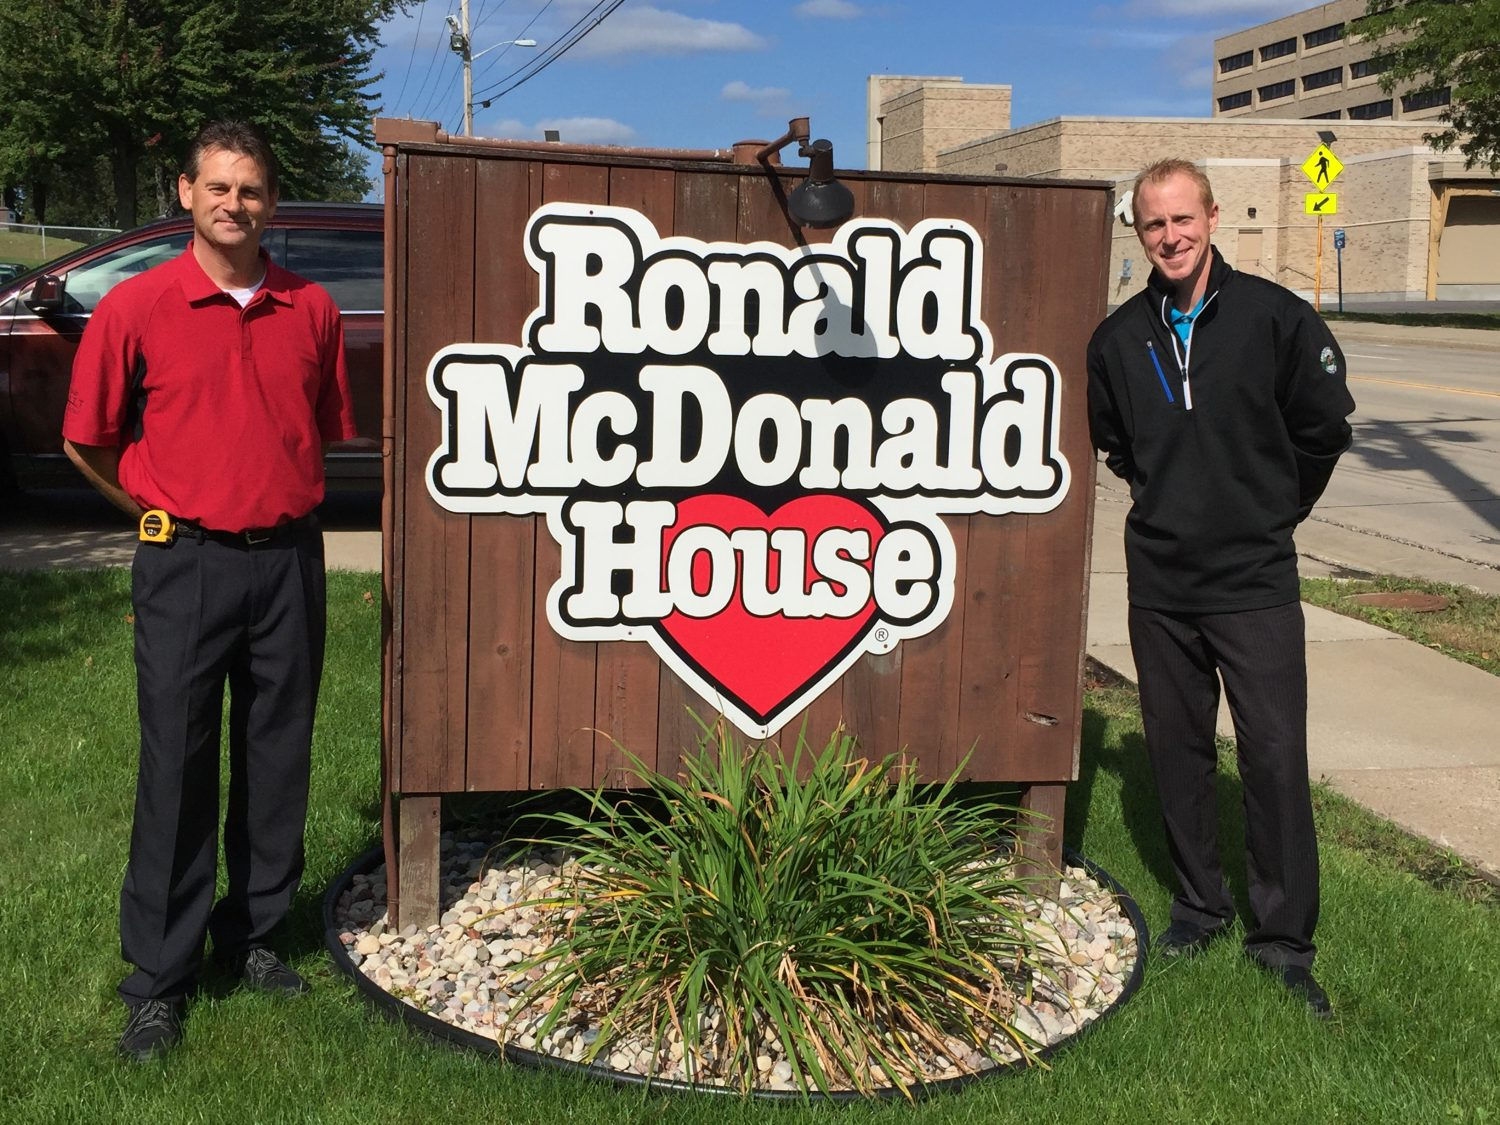 John Sikora (left) and C.W. Mitten IV (right) of Mittens Home Appliance made a special delivery to the Ronald McDonald House.